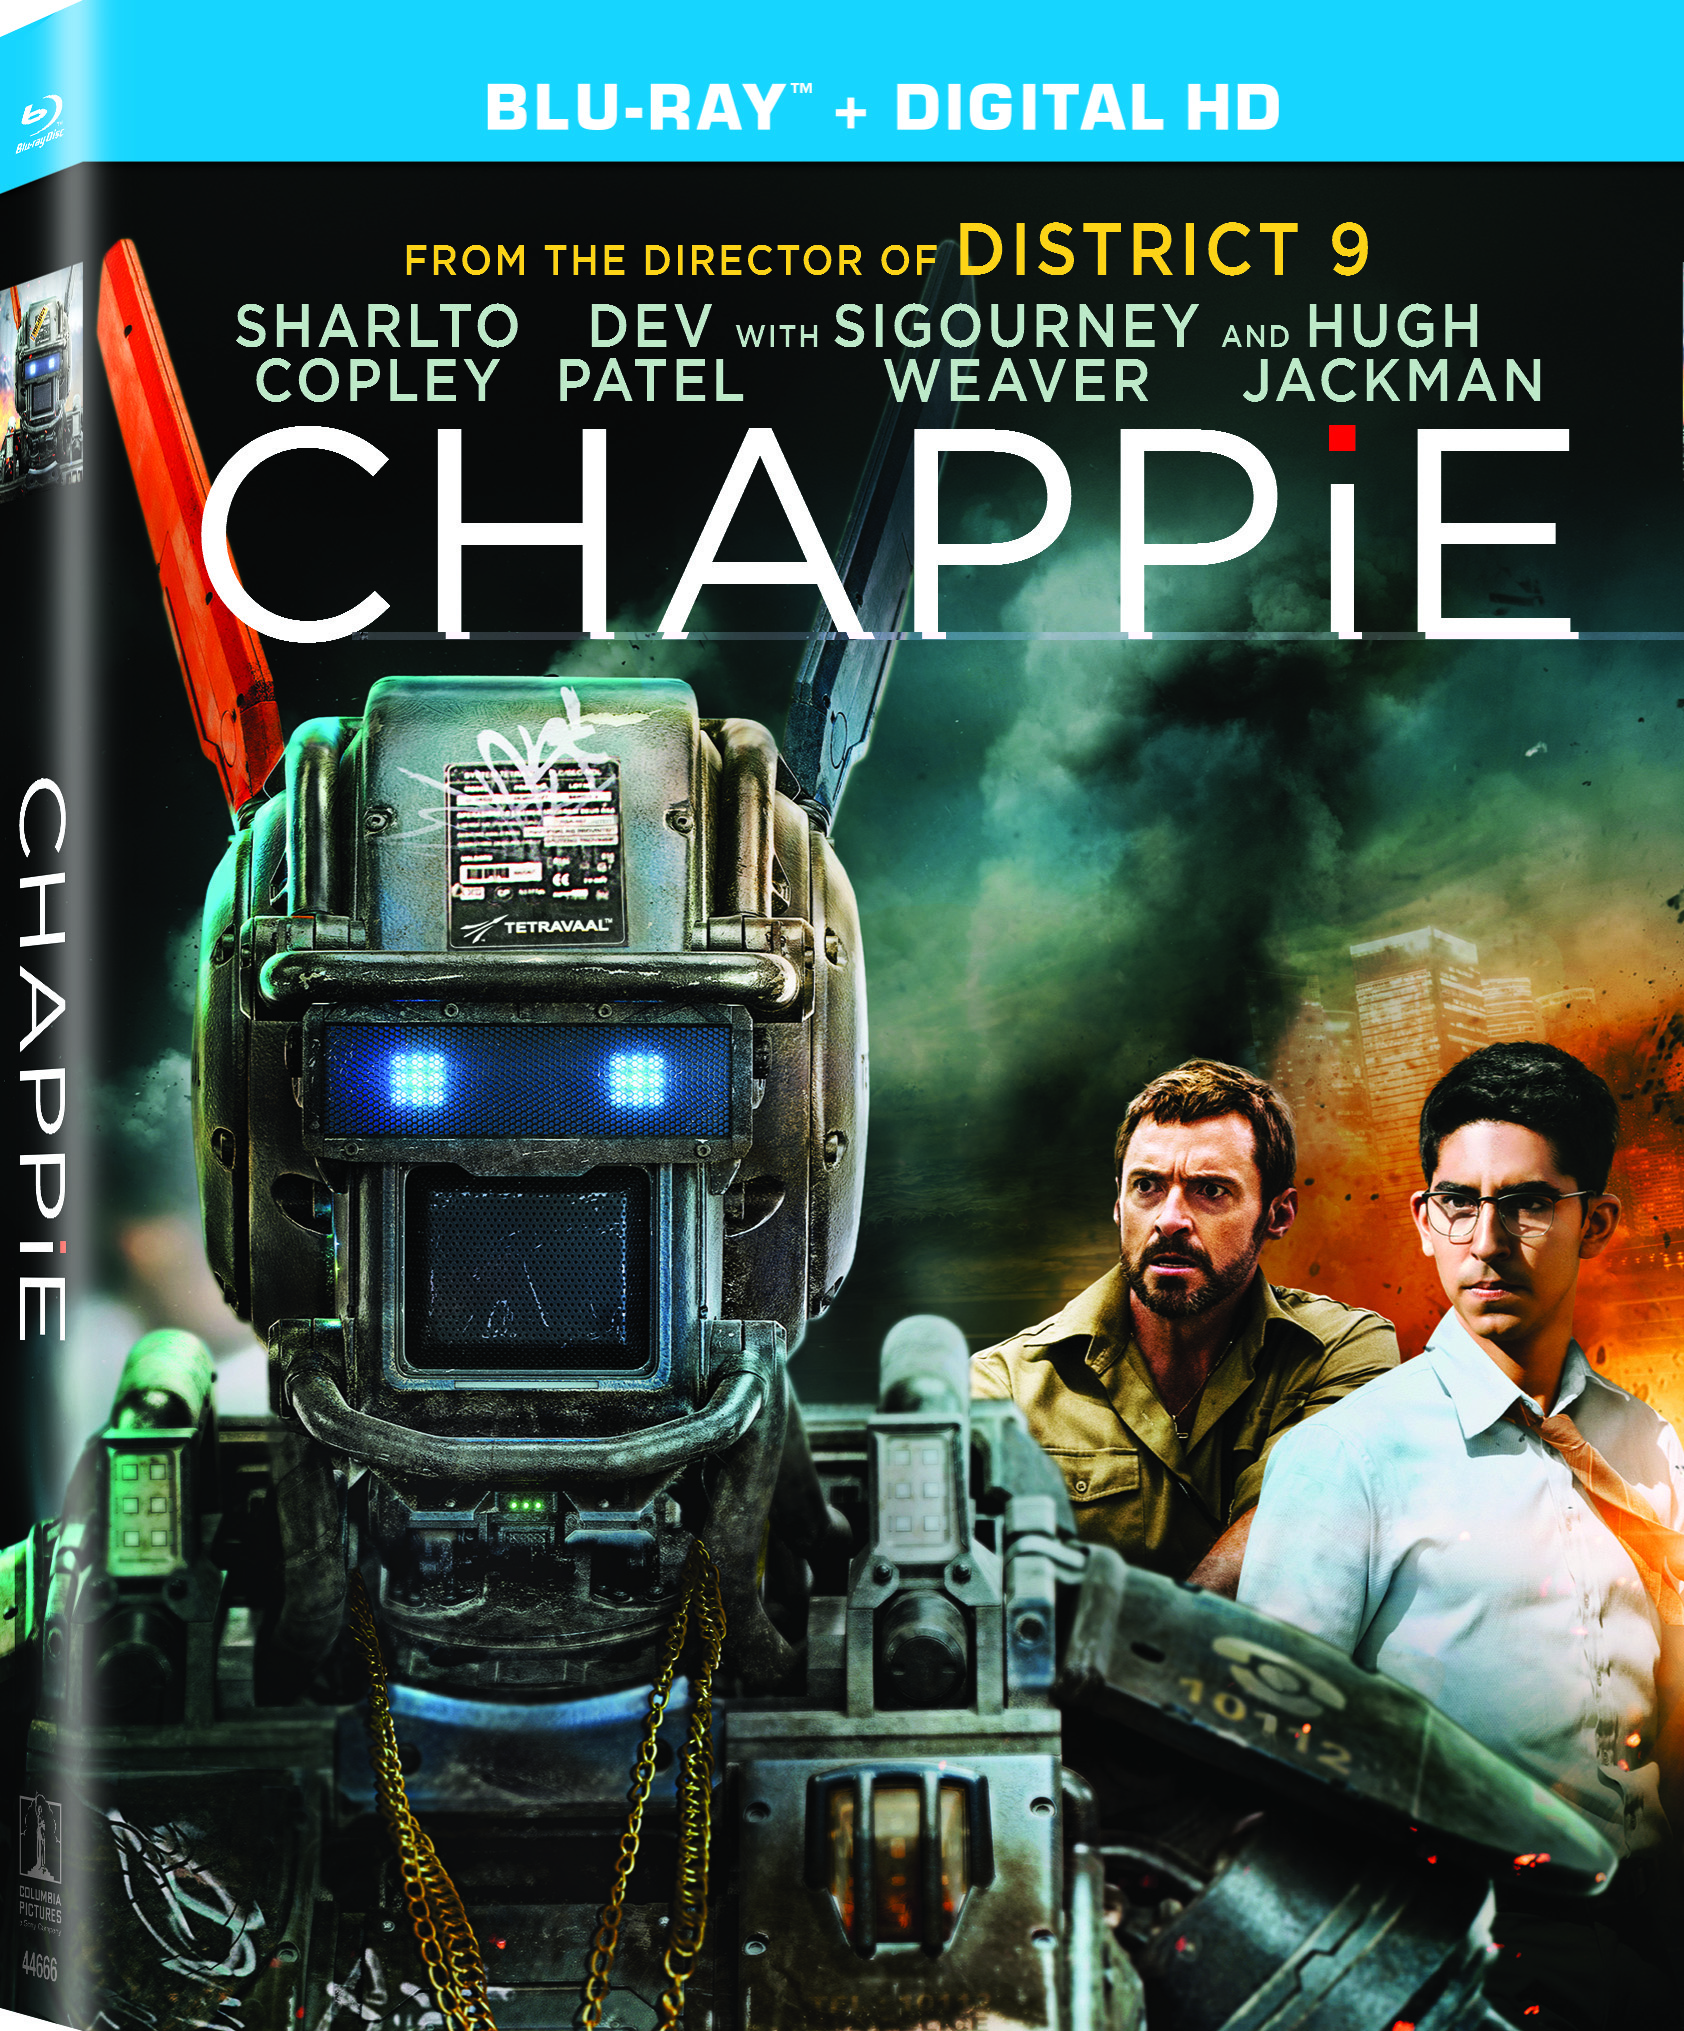 Chappie Blu-ray Review